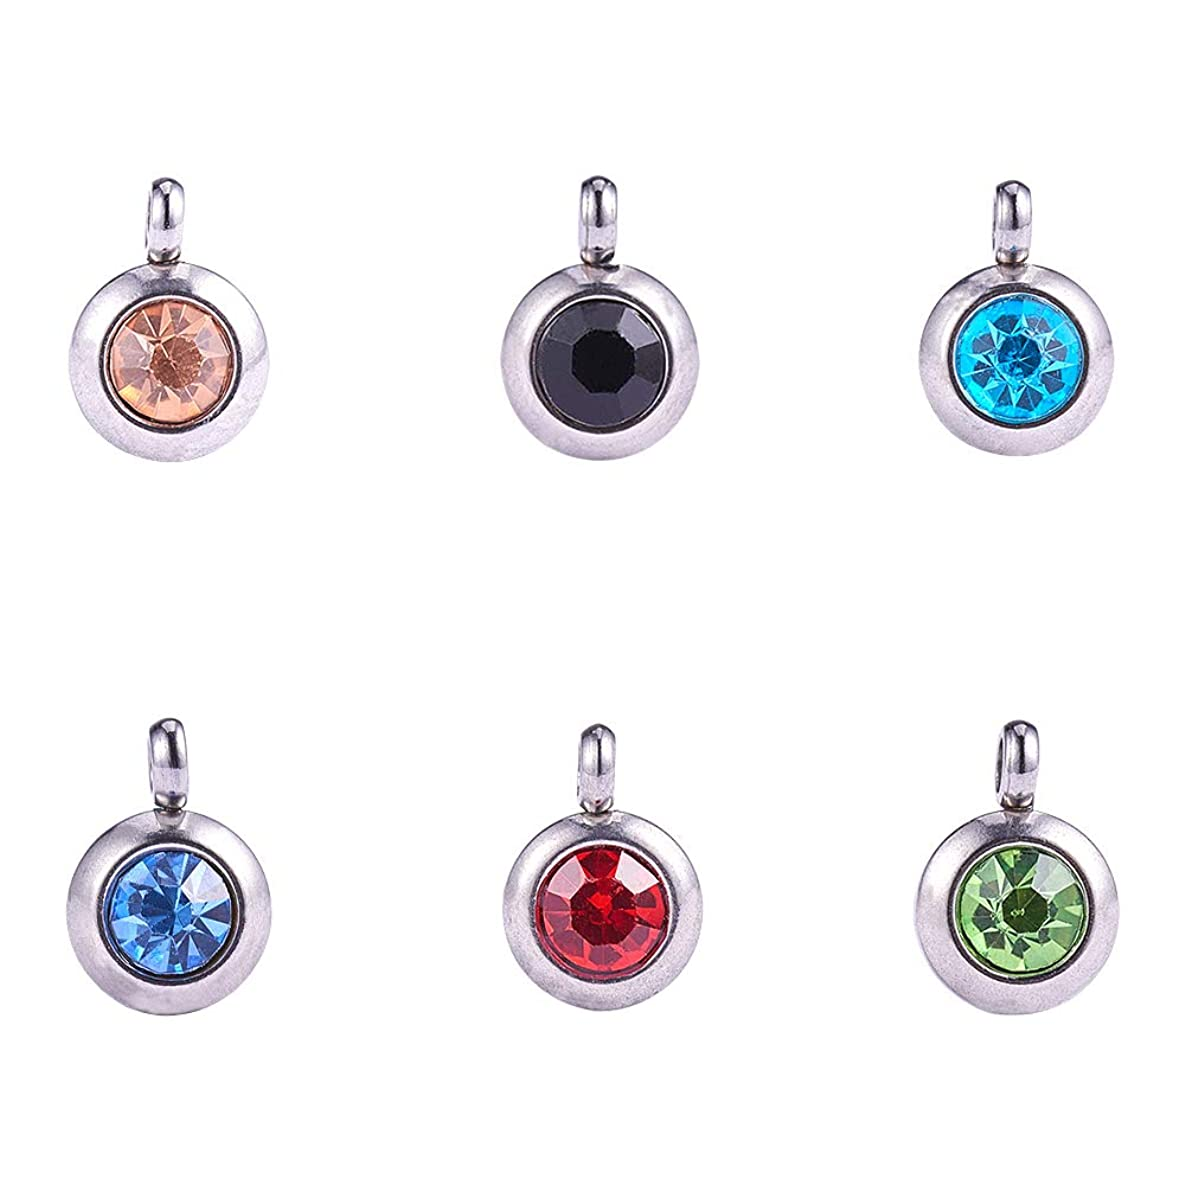 PandaHall Elite 36 Pcs 304 Stainless Steel Faceted Crystal Rhinestone Dangle Charm Pendant Beads 9x6.5x4mm for Jewelry Making 6 Colors